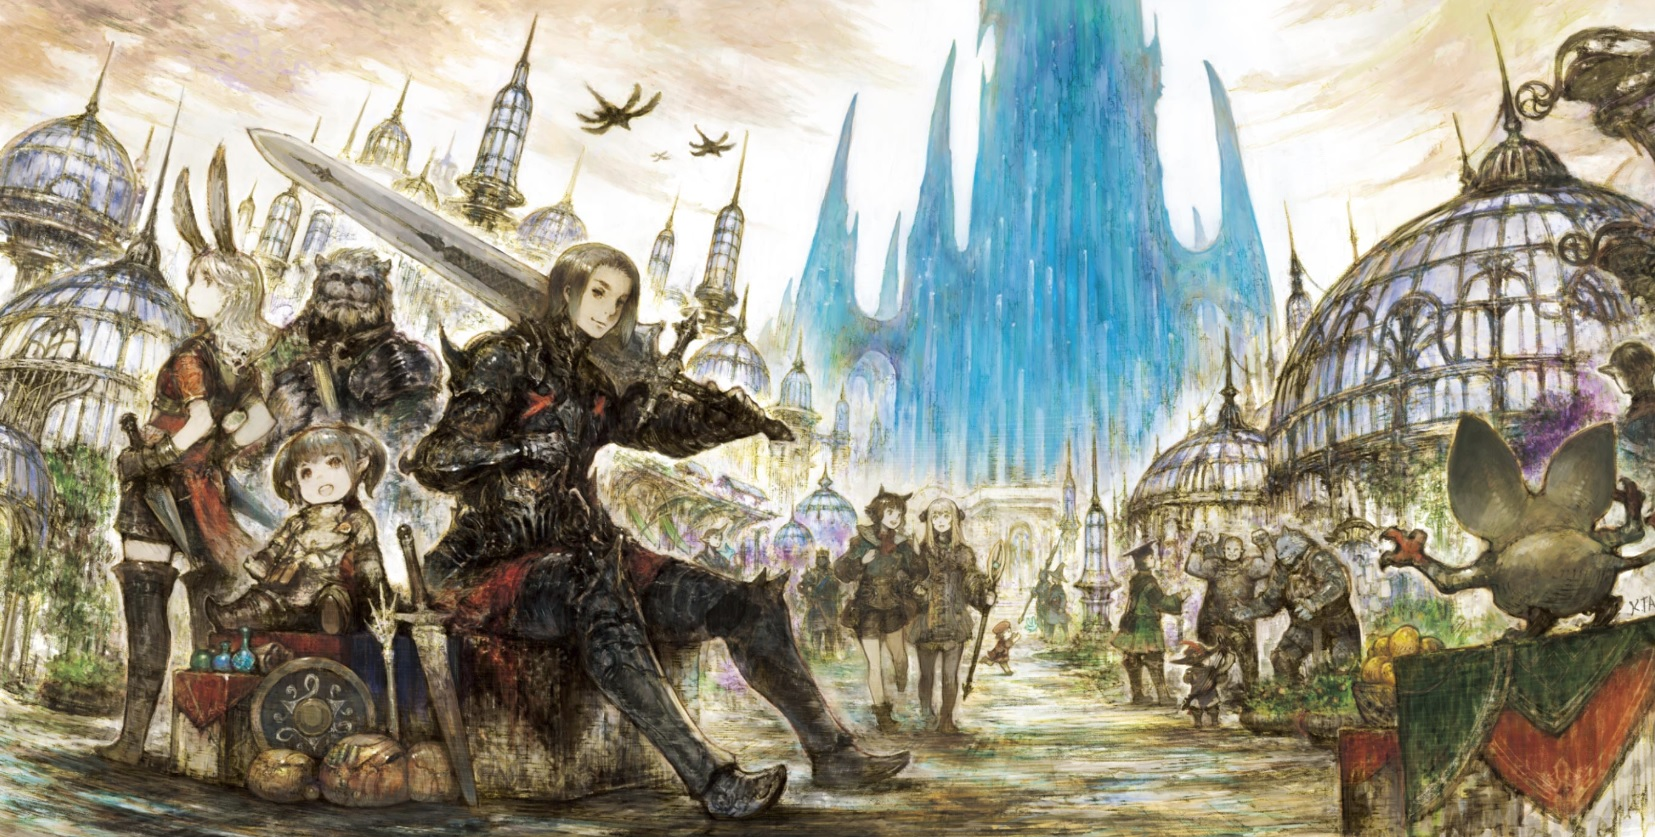 Square Enix shares massive prelim patch notes ahead of Final Fantasy